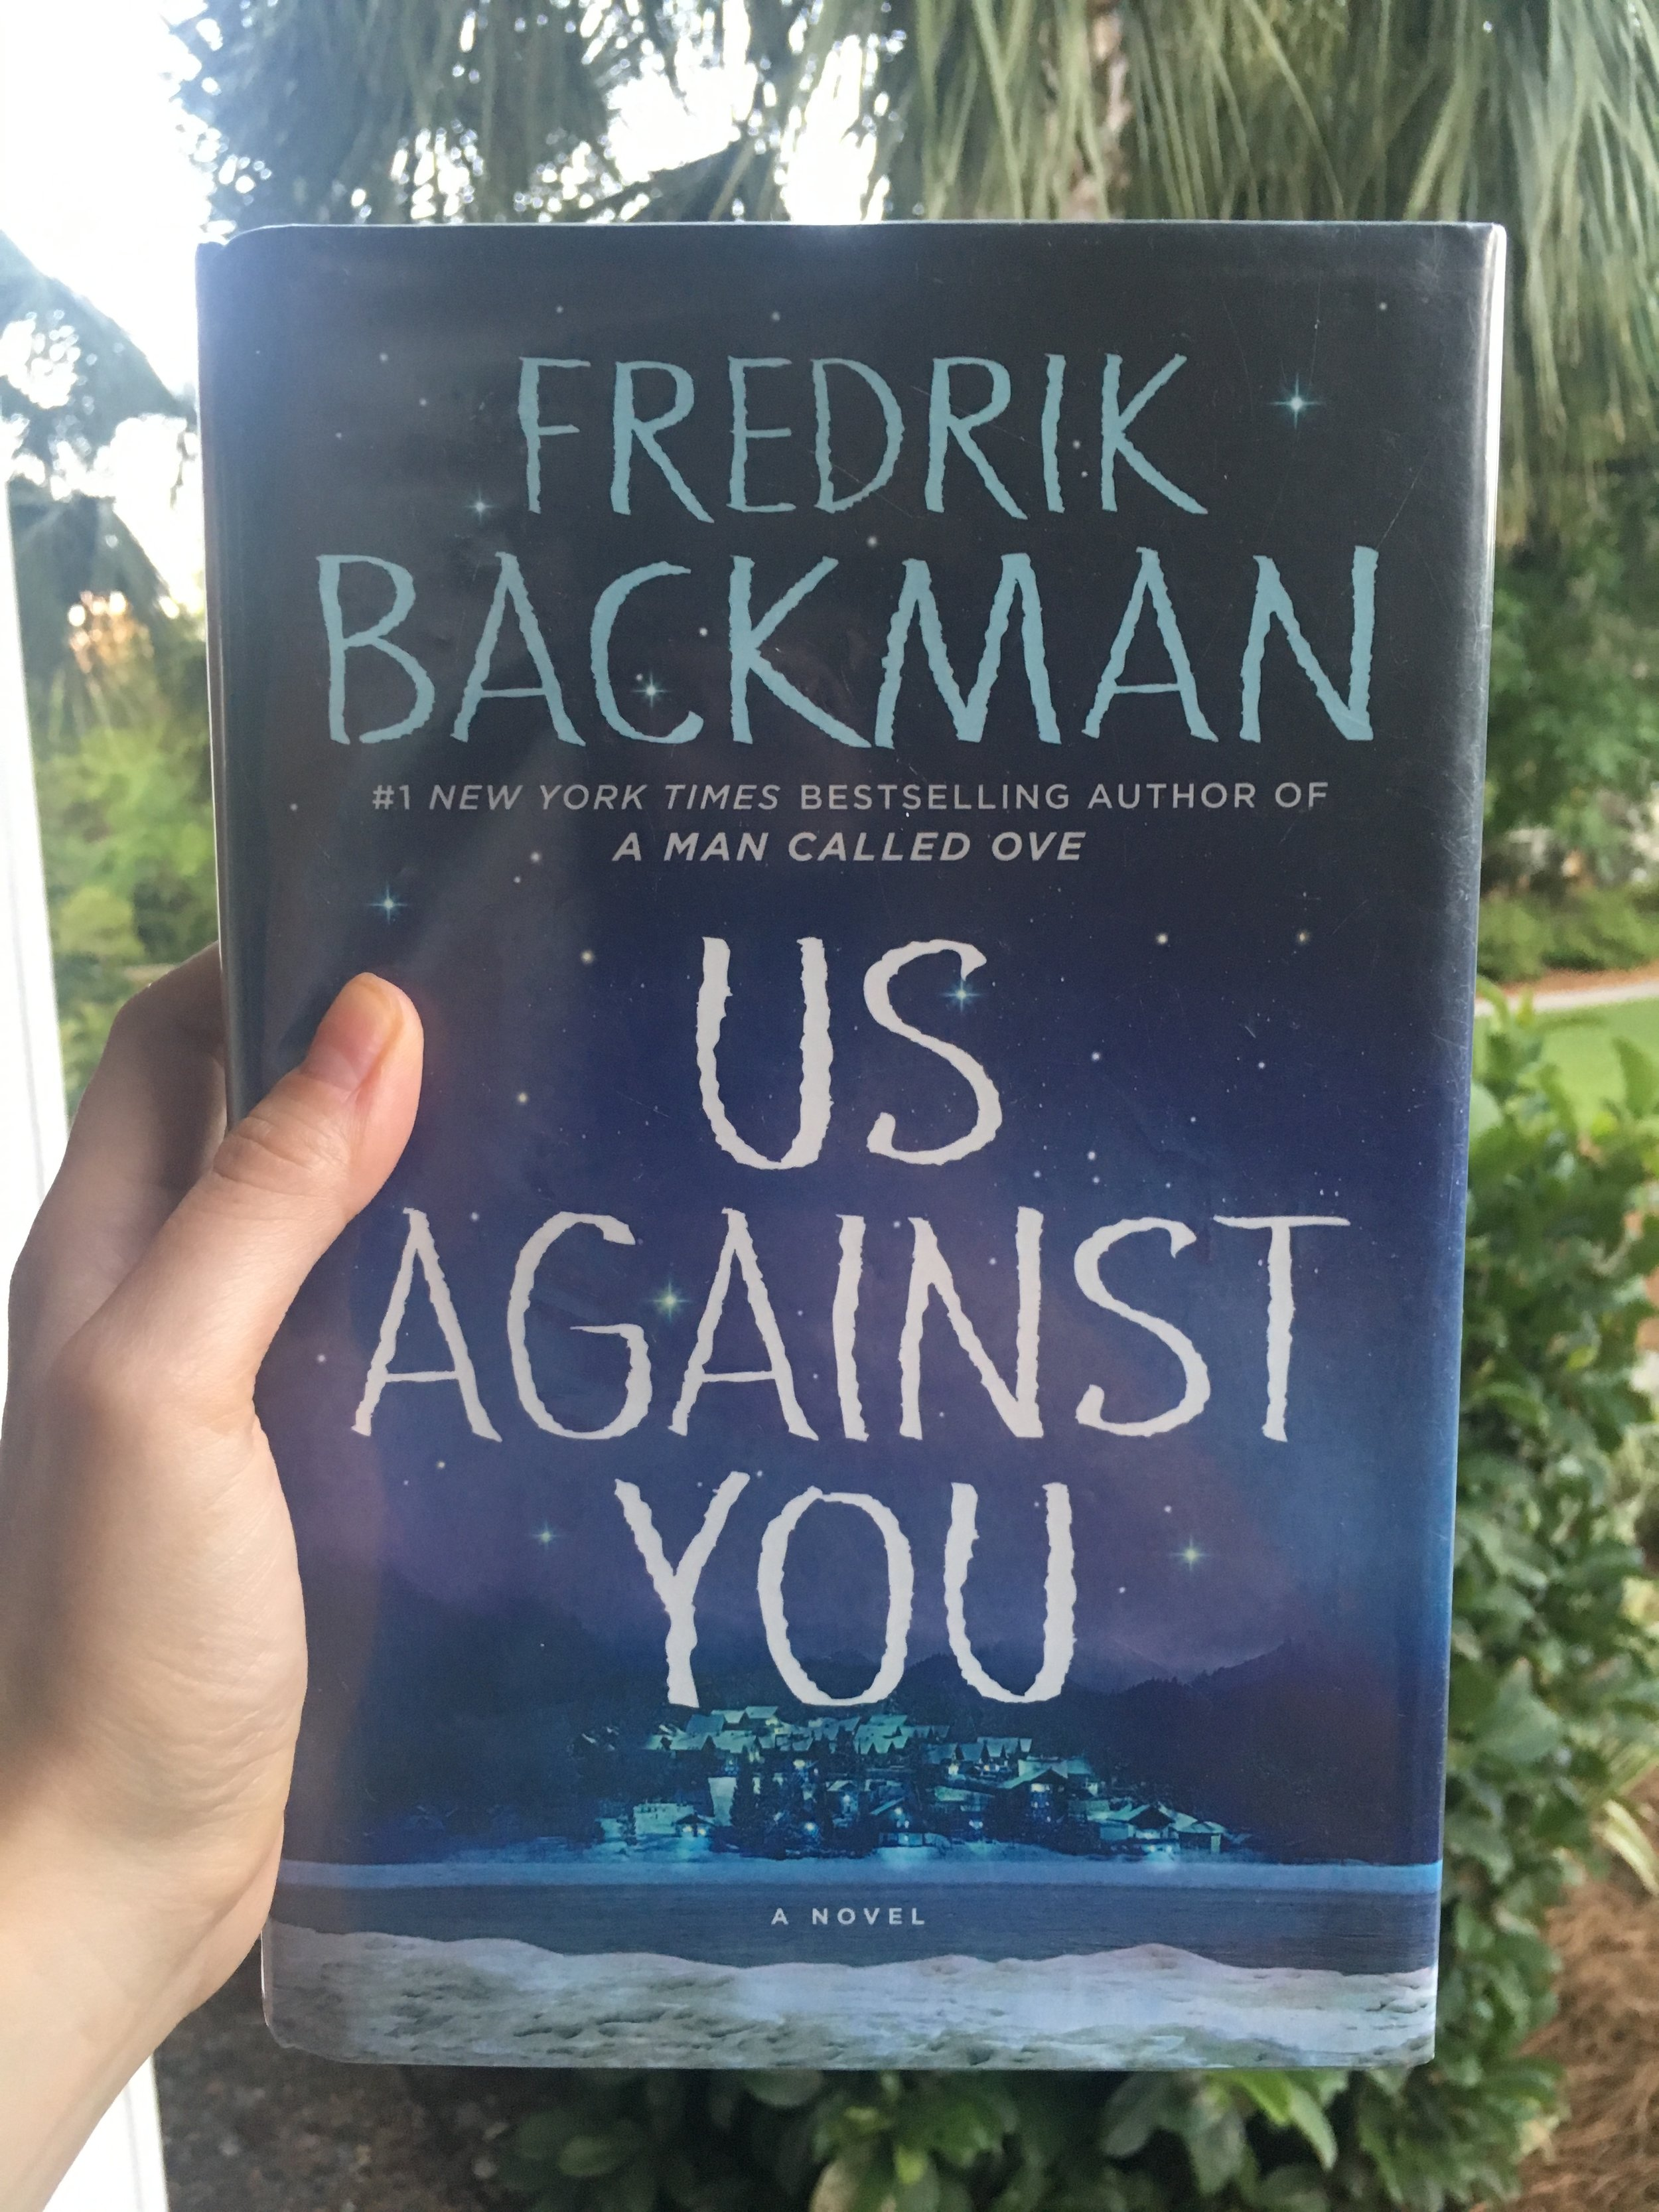 US AGAINST YOU - by Fredrik Backman